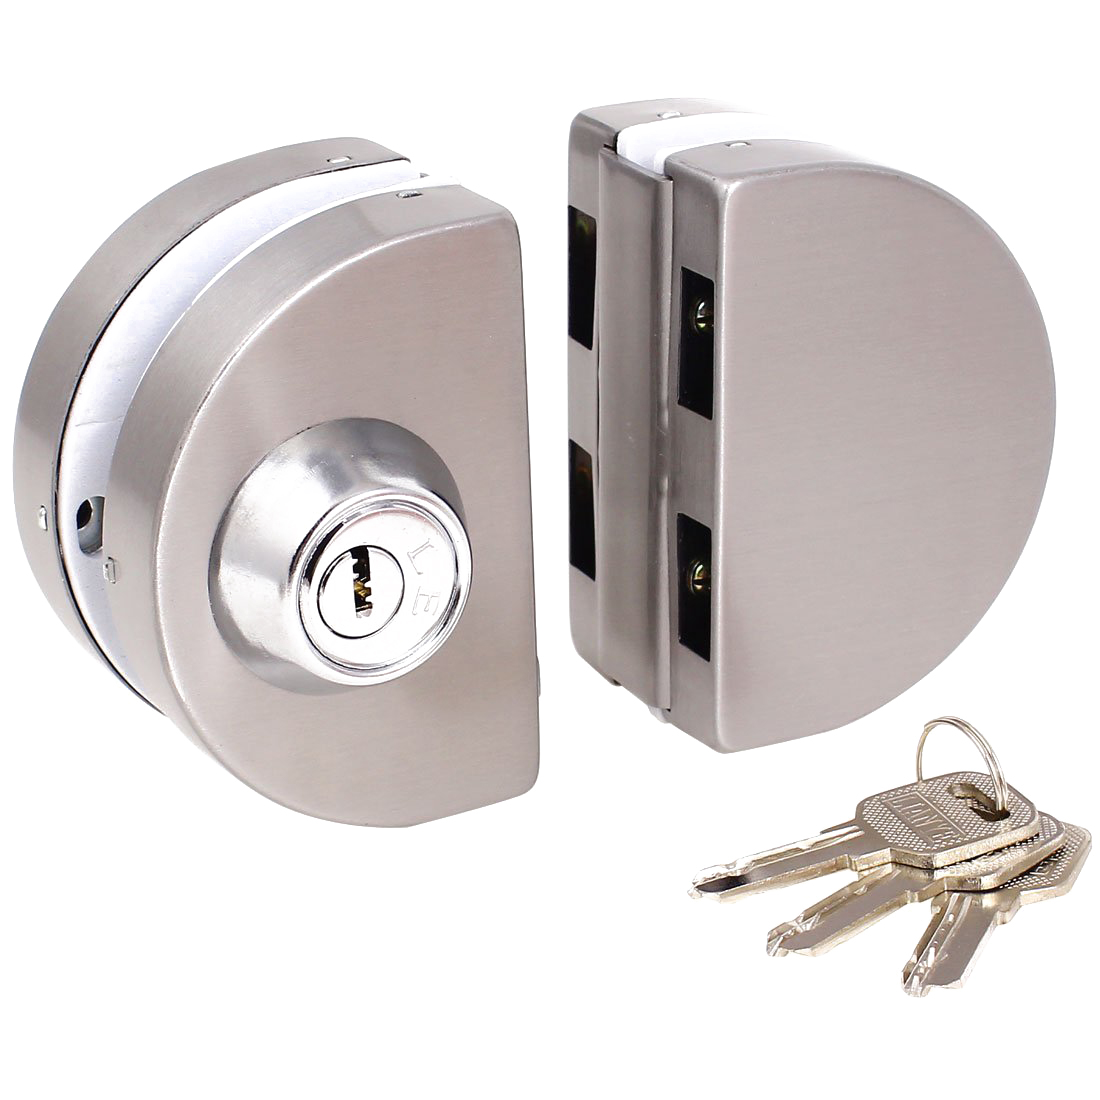 Slide Lock For Glass Door: PK 5X Entry Gate 10-12mm Glass Swing Push Sliding Door